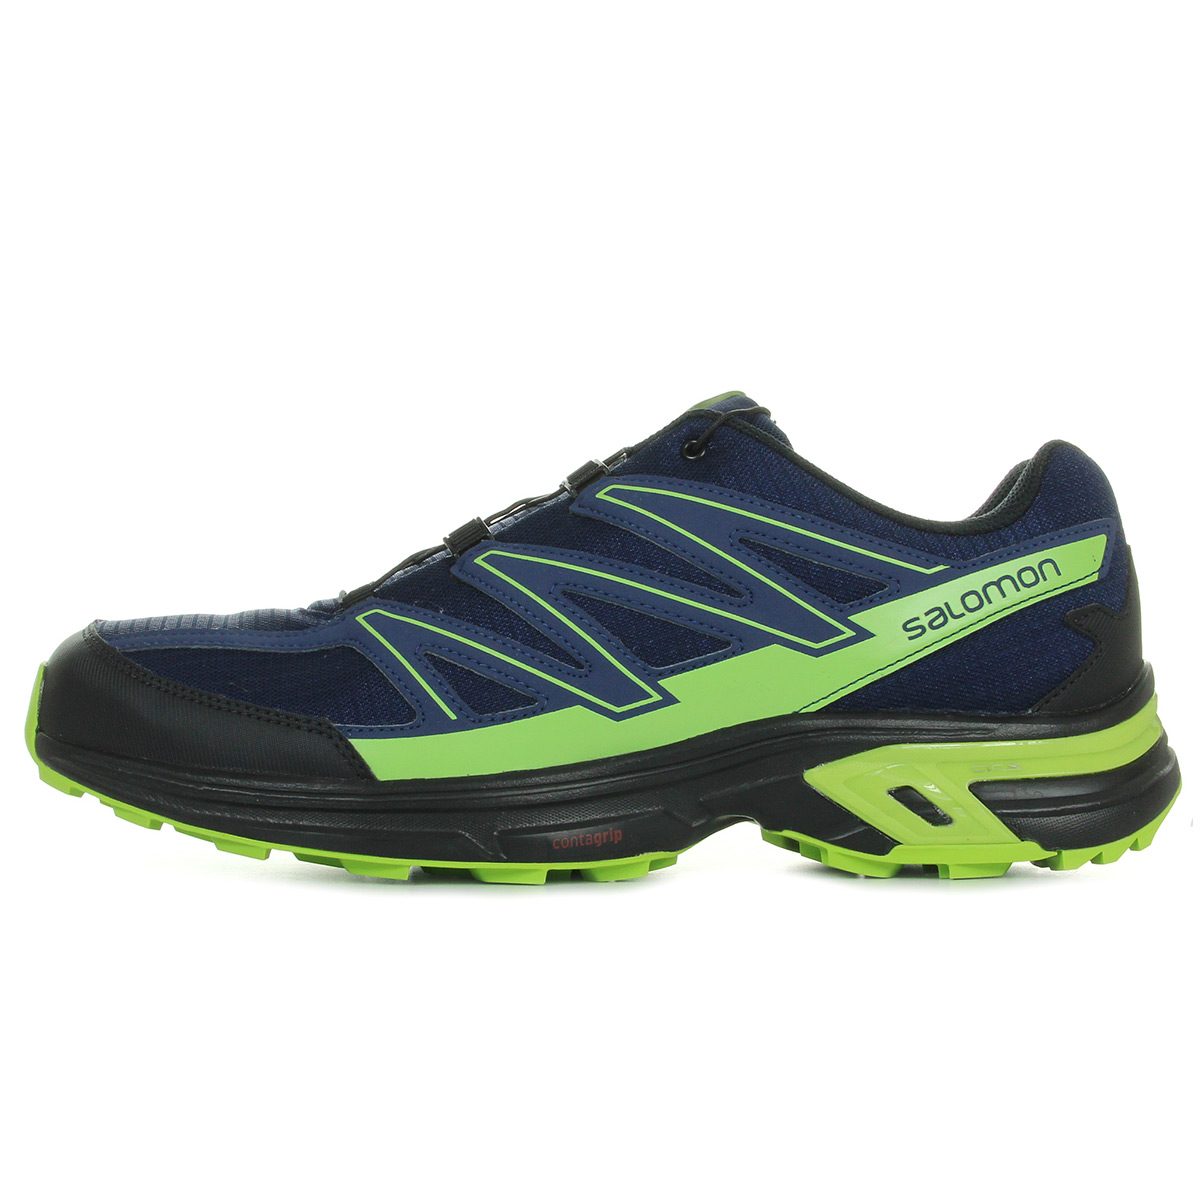 Salomon Access 2 Wings Homme Running 398599 wUxqZ4UgS